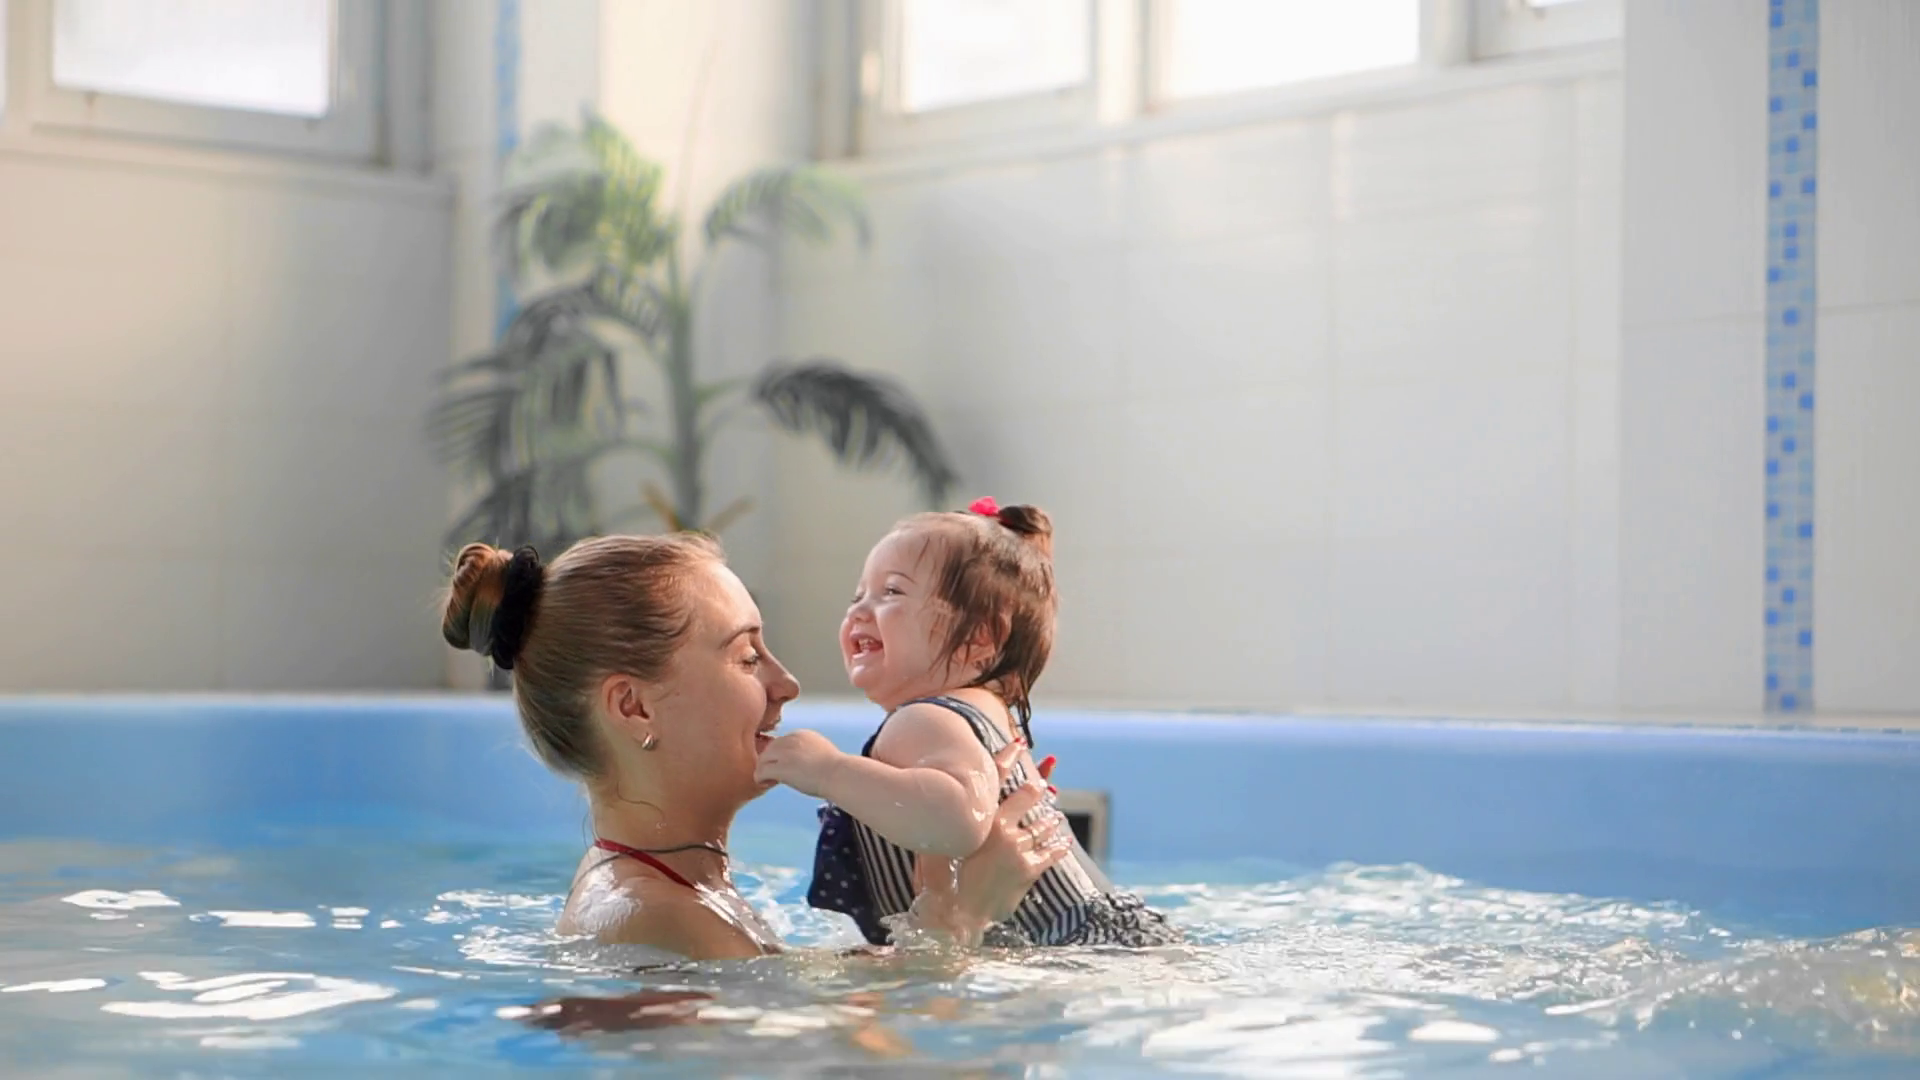 Beautiful mother teaching cute baby girl how to swim in a swimming pool. Child having fun in water with mom. Stock Video Footage - Storyblocks